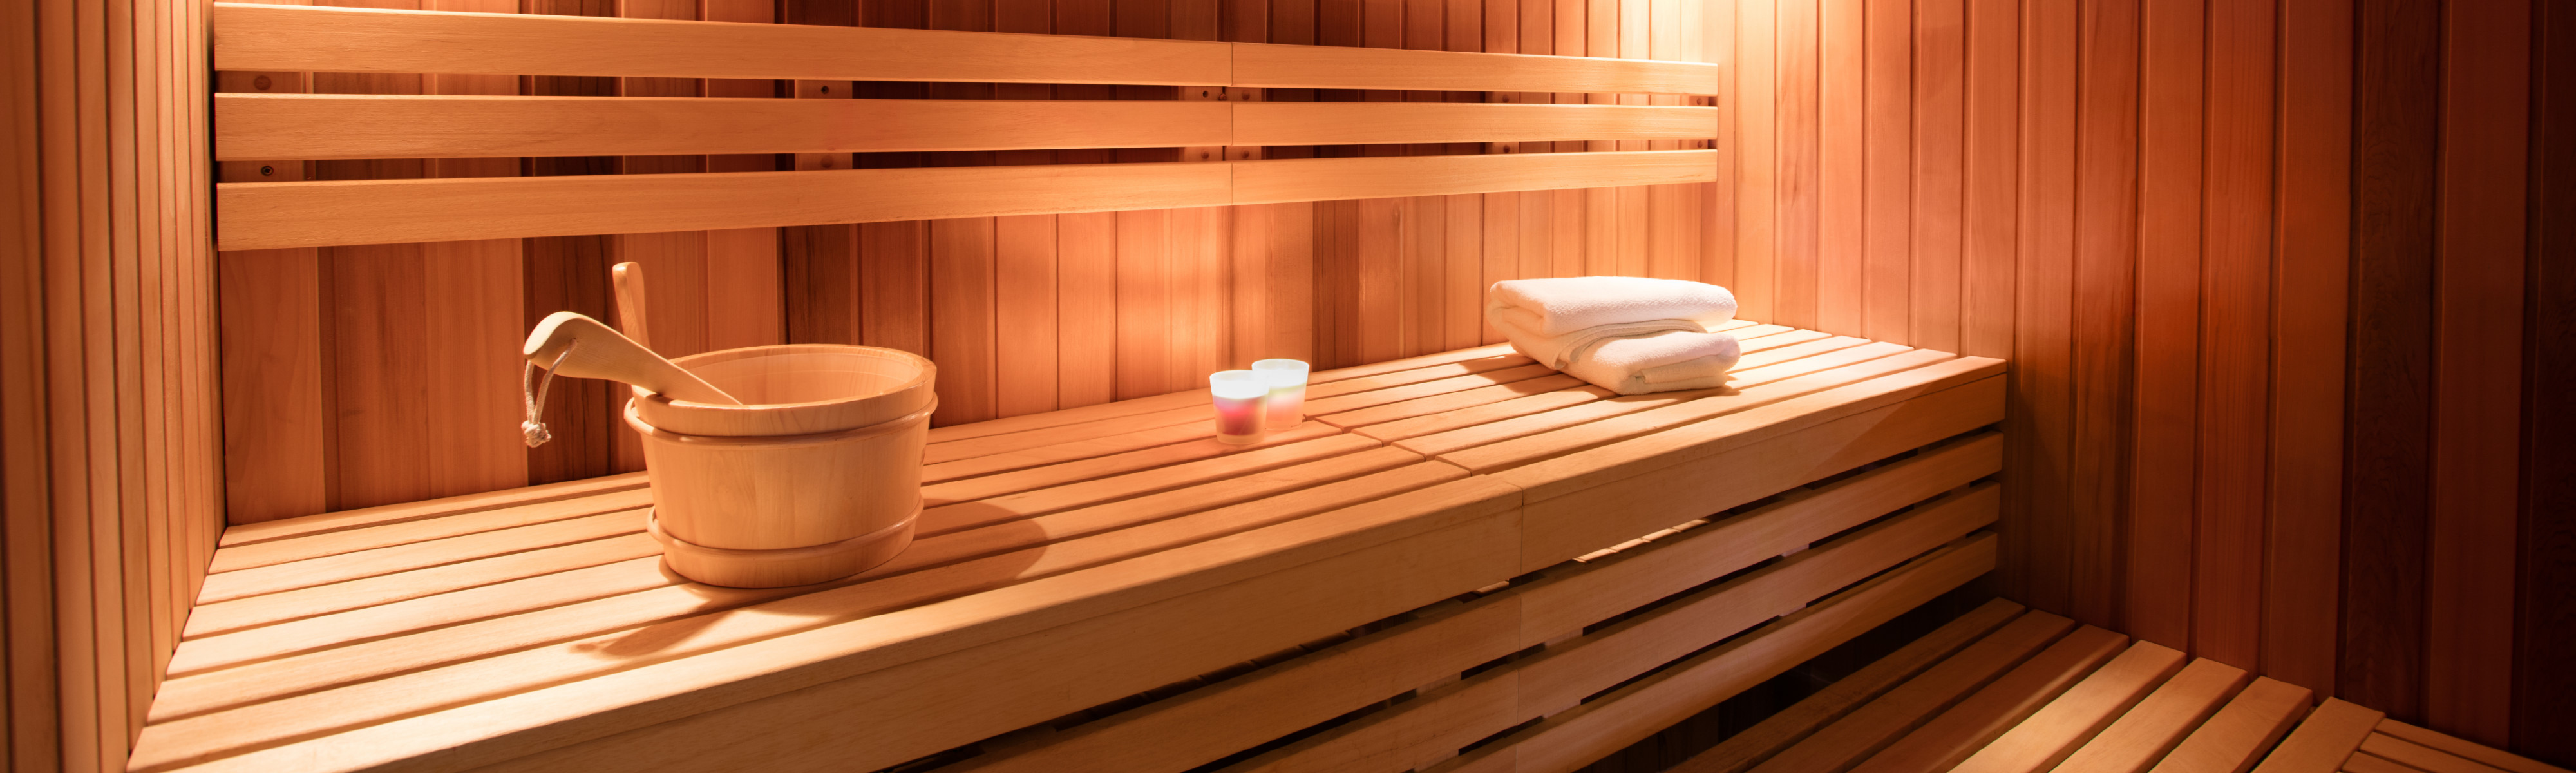 Interior of a beautiful wood sauna with towels and water dipper.